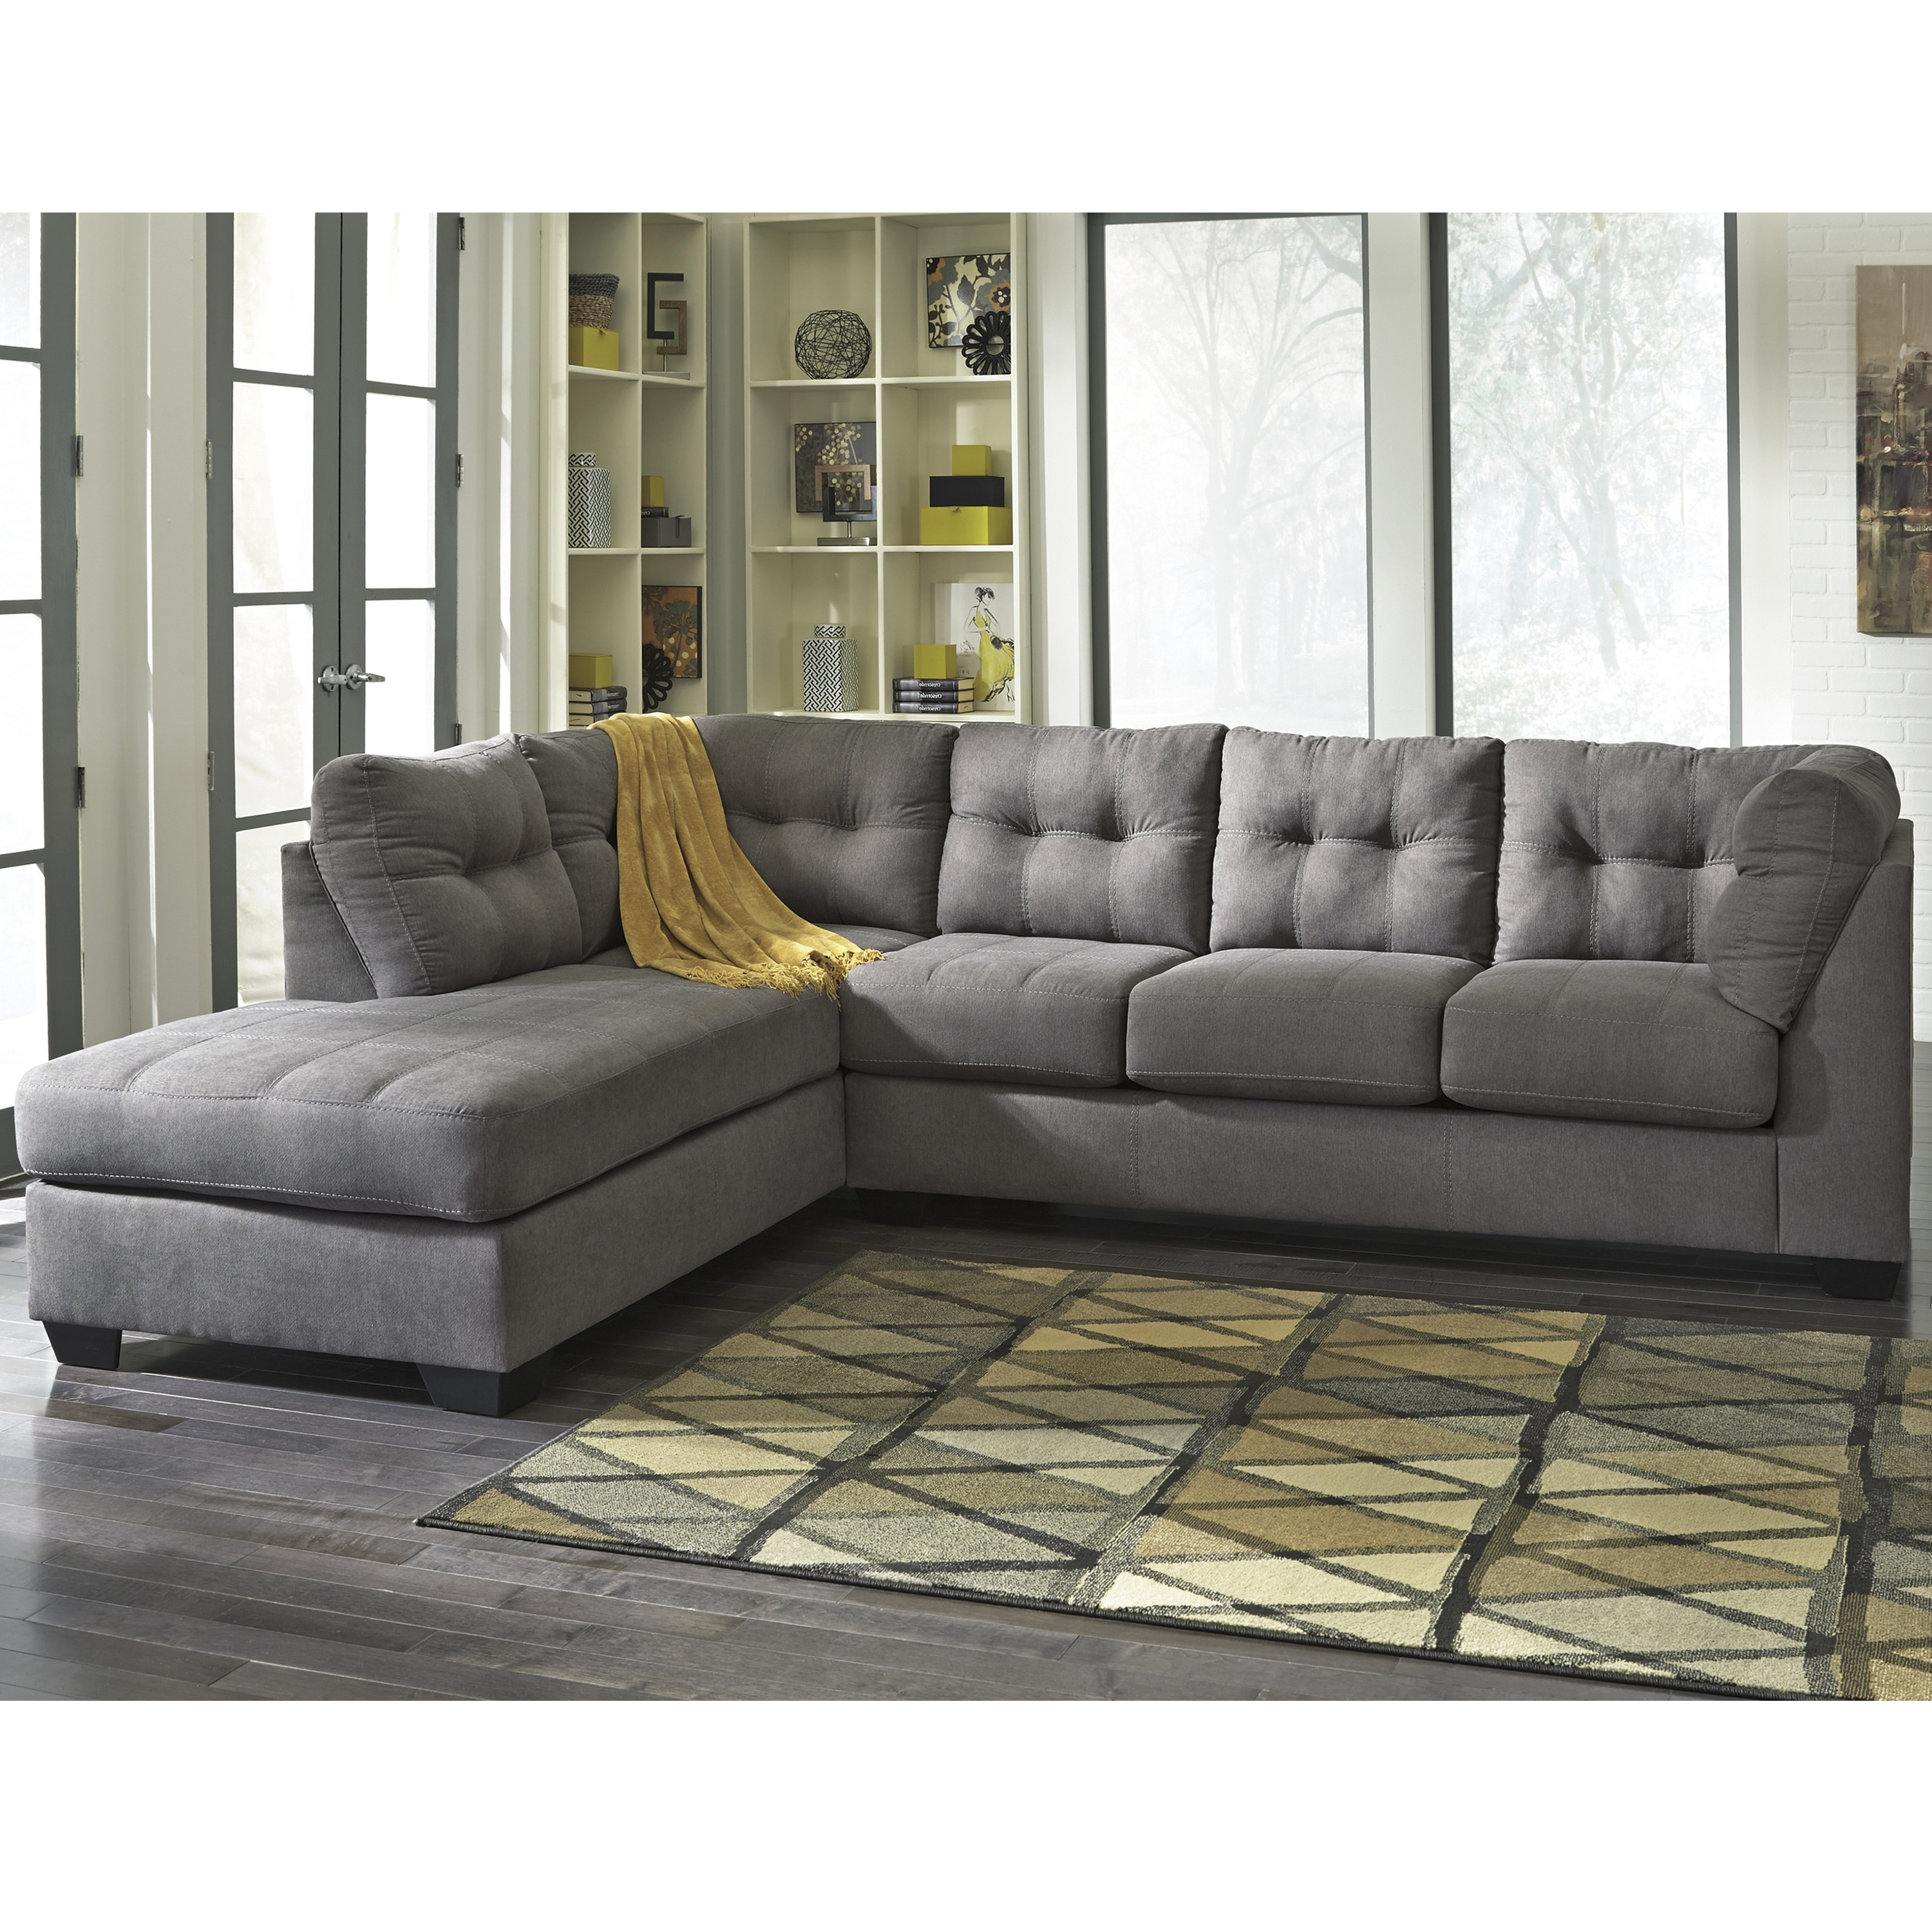 Furniture: Cool Cheap Sectional For Elegant Living Room Design Within Lucy Grey 2 Piece Sleeper Sectionals With Laf Chaise (View 13 of 25)